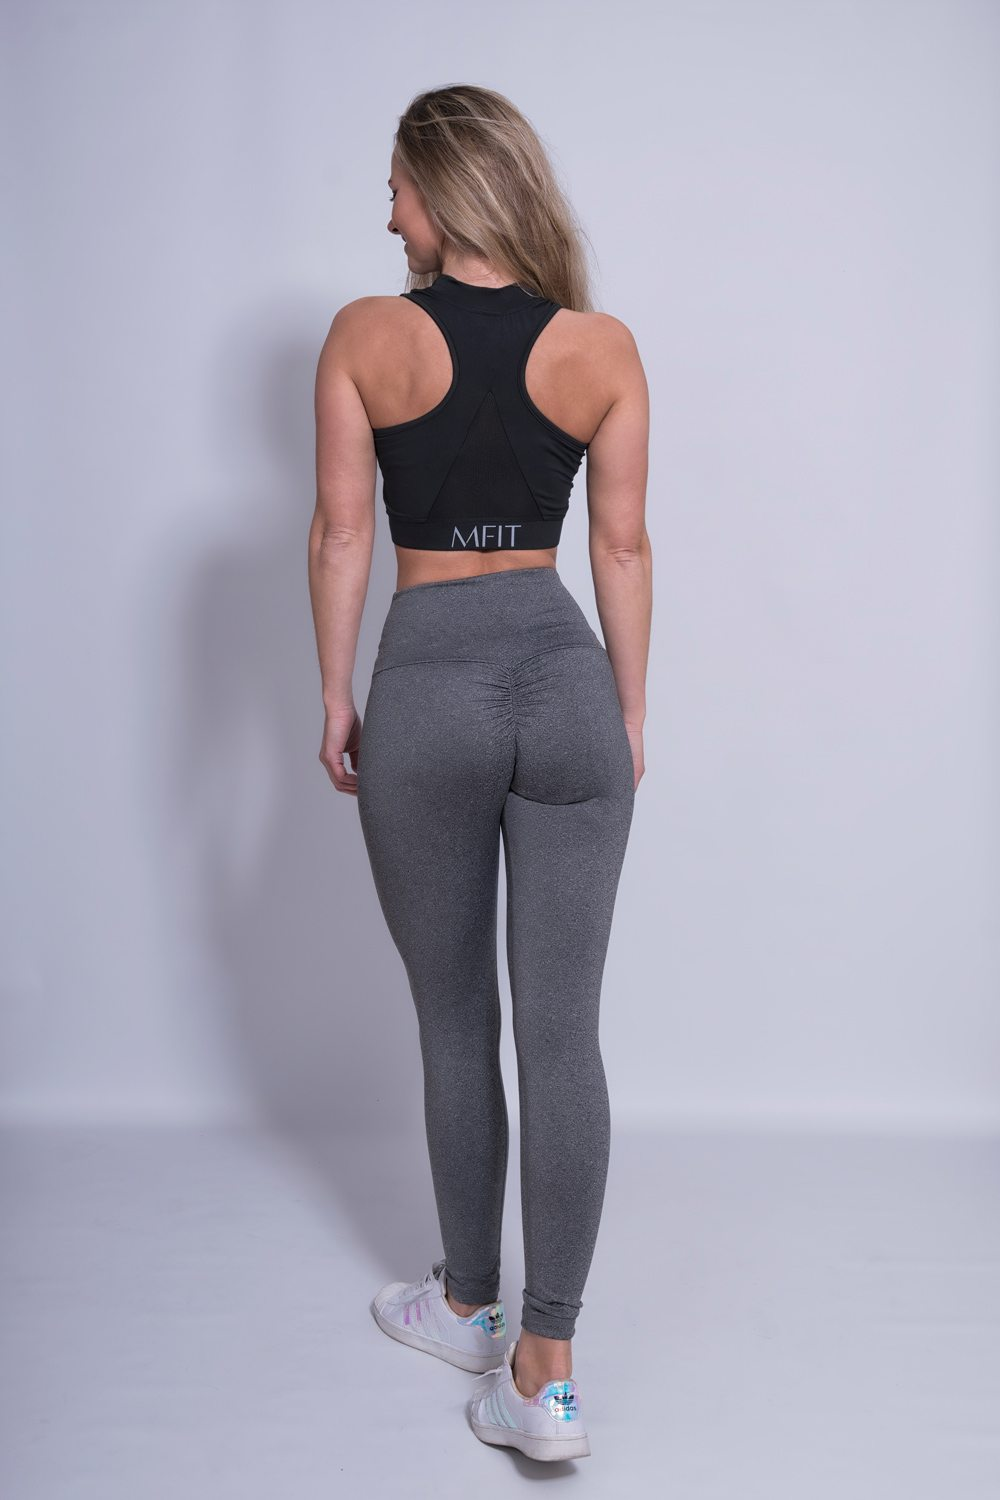 Mfit High Waist Legging Grijs-2